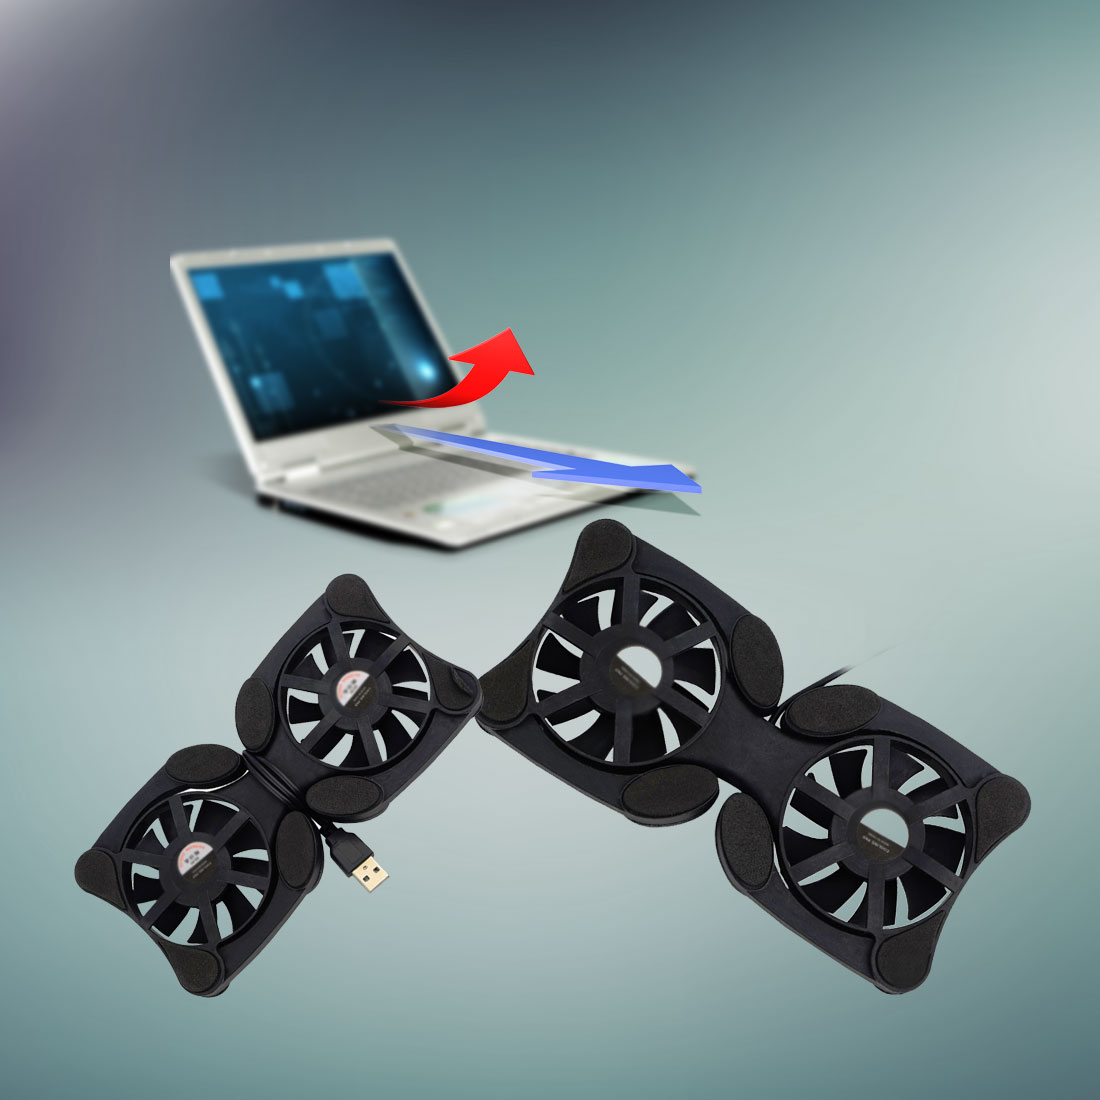 NOYOKERE 1pcs USB Port Mini Octopus Notebook Fan Cooler Cooling Pad For 7-15 inch Laptop ...